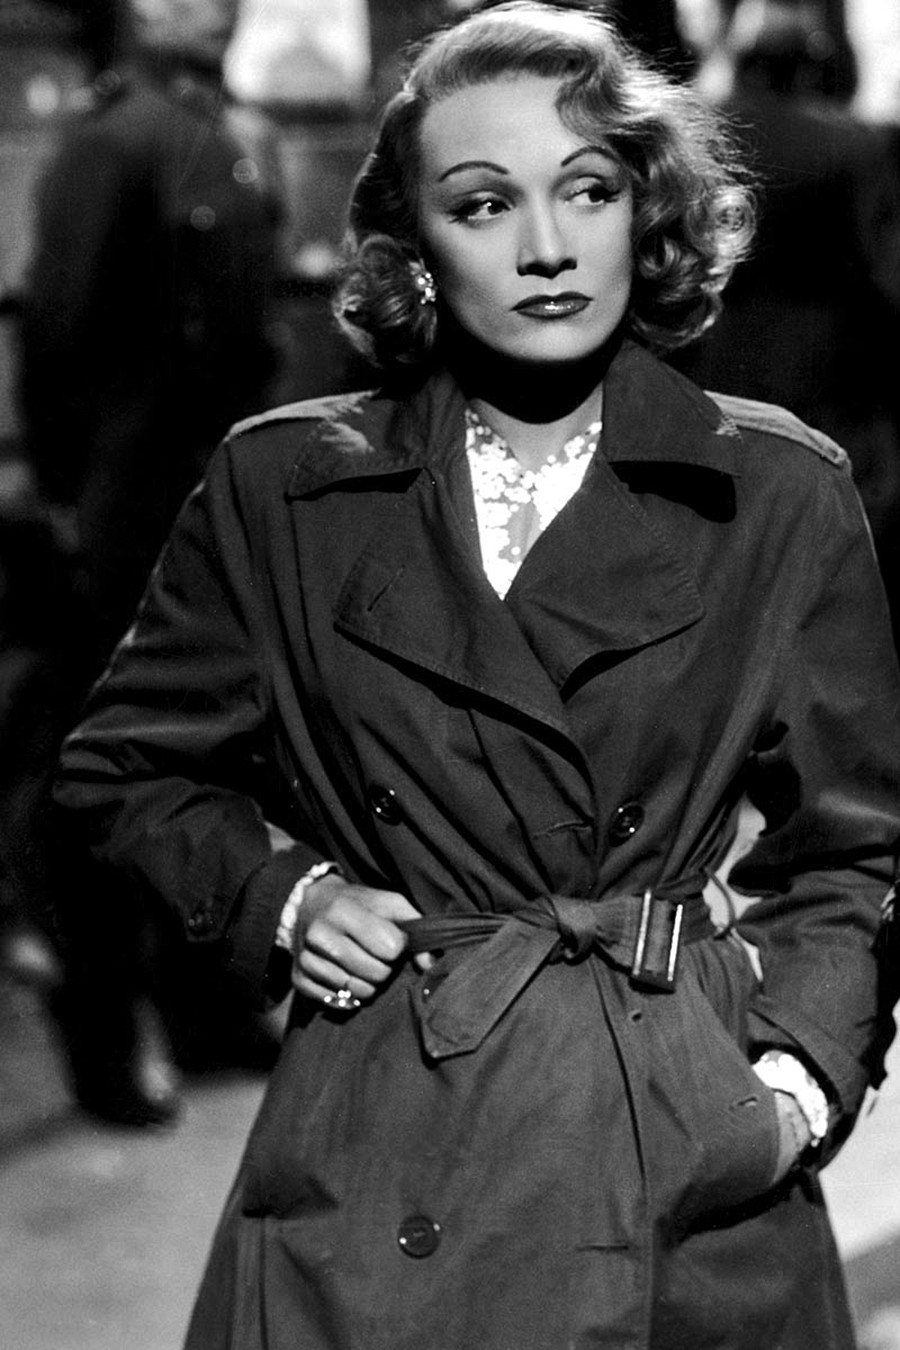 Marlene Dietrich wearing a trench coat in A Foreign Affair.